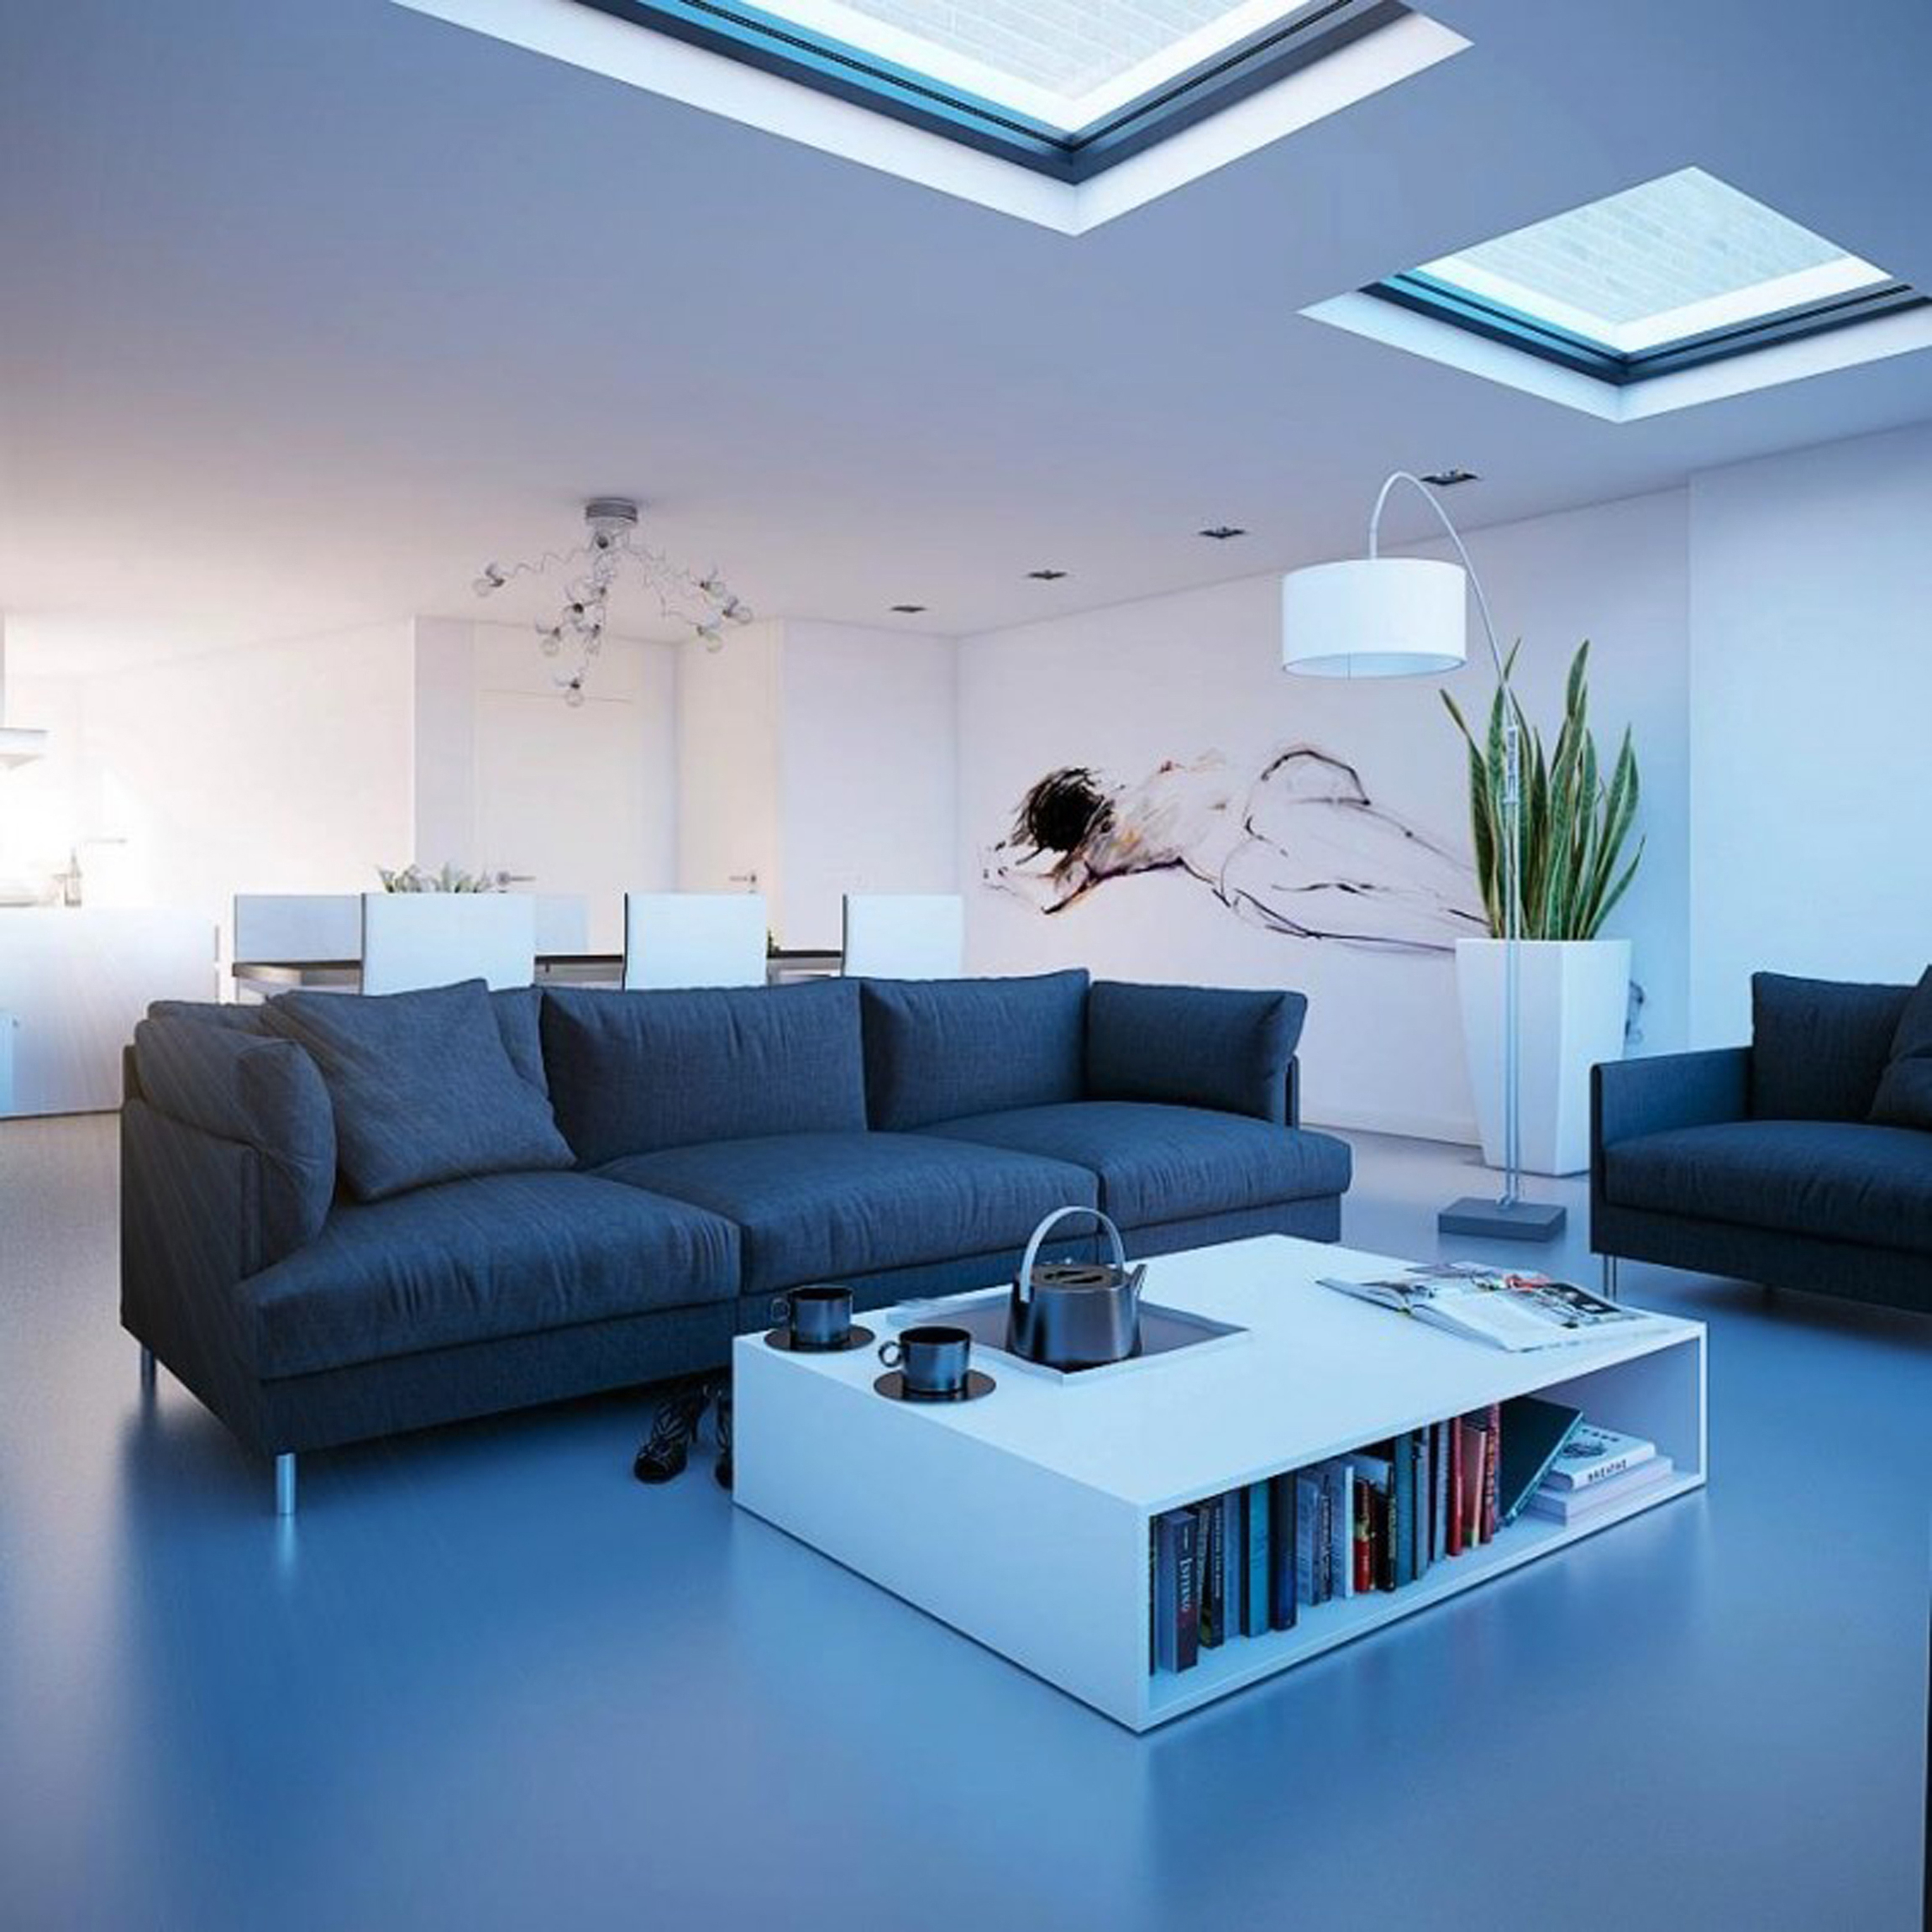 modern-living-room-decoration-with-black-sofas-and-awesome-white-living-table-with-built-in-electrical-stove-astonishing-living-rooms-design-with-ceiling-window-skylight